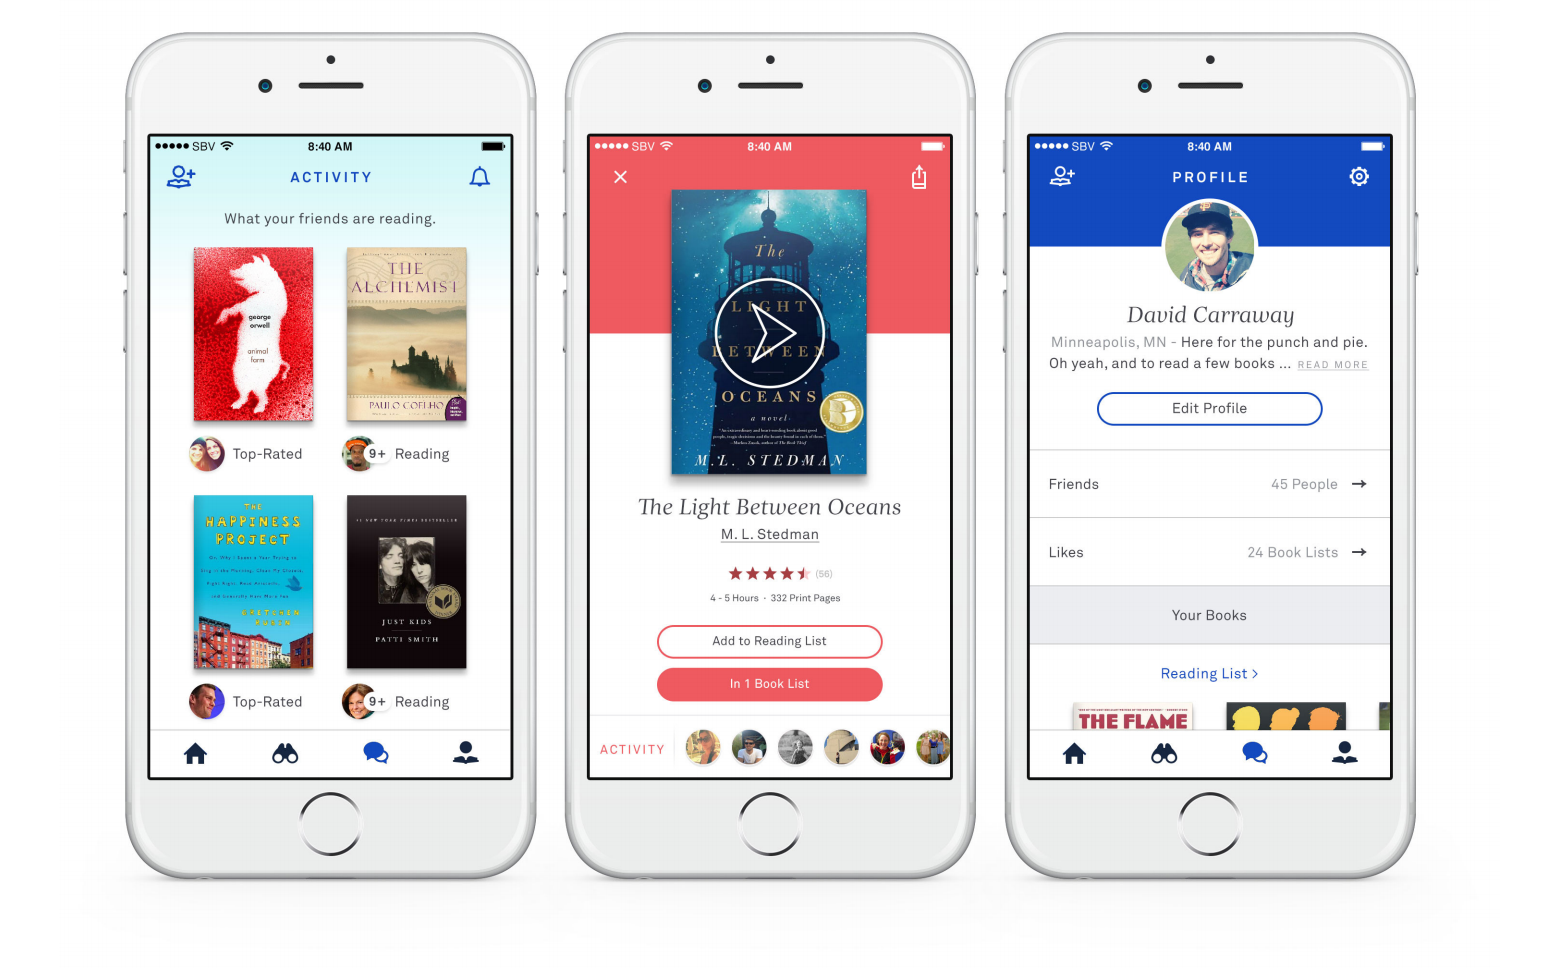 Oyster's App Update Focuses On Better Recommendation